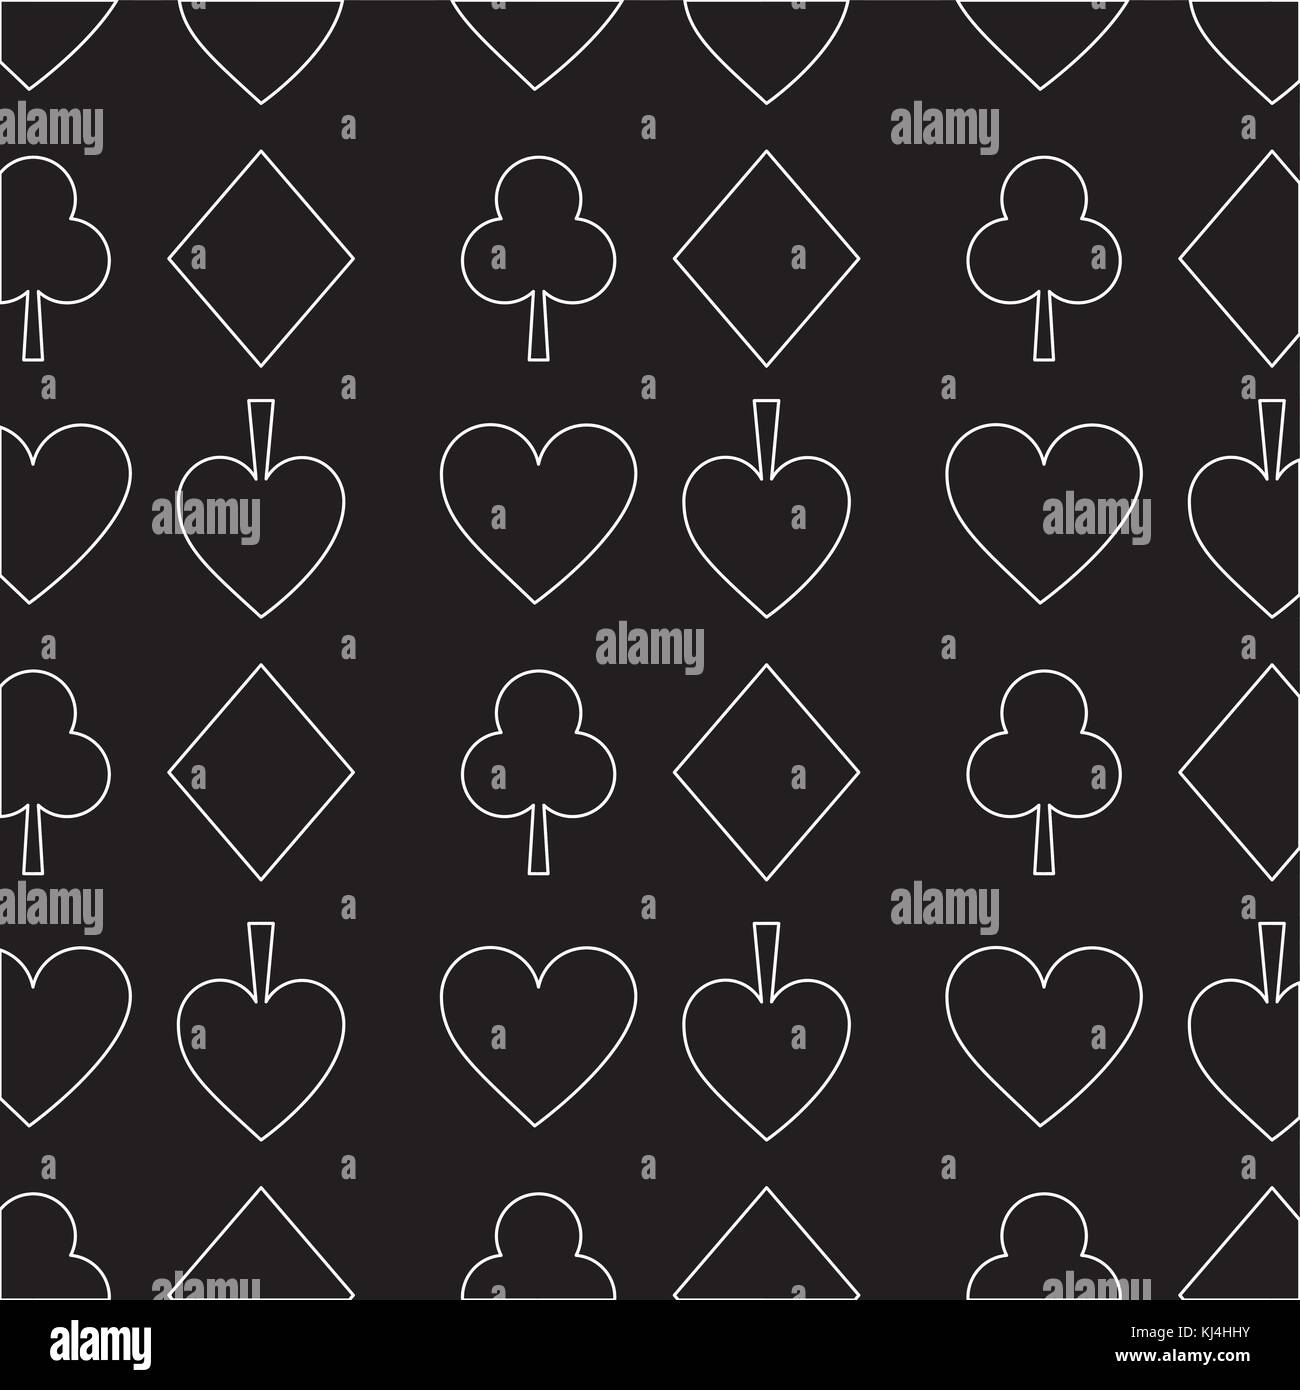 Seamless Poker Pattern With Card Suits Casino Texture Dark Background Stock Vector Image Art Alamy